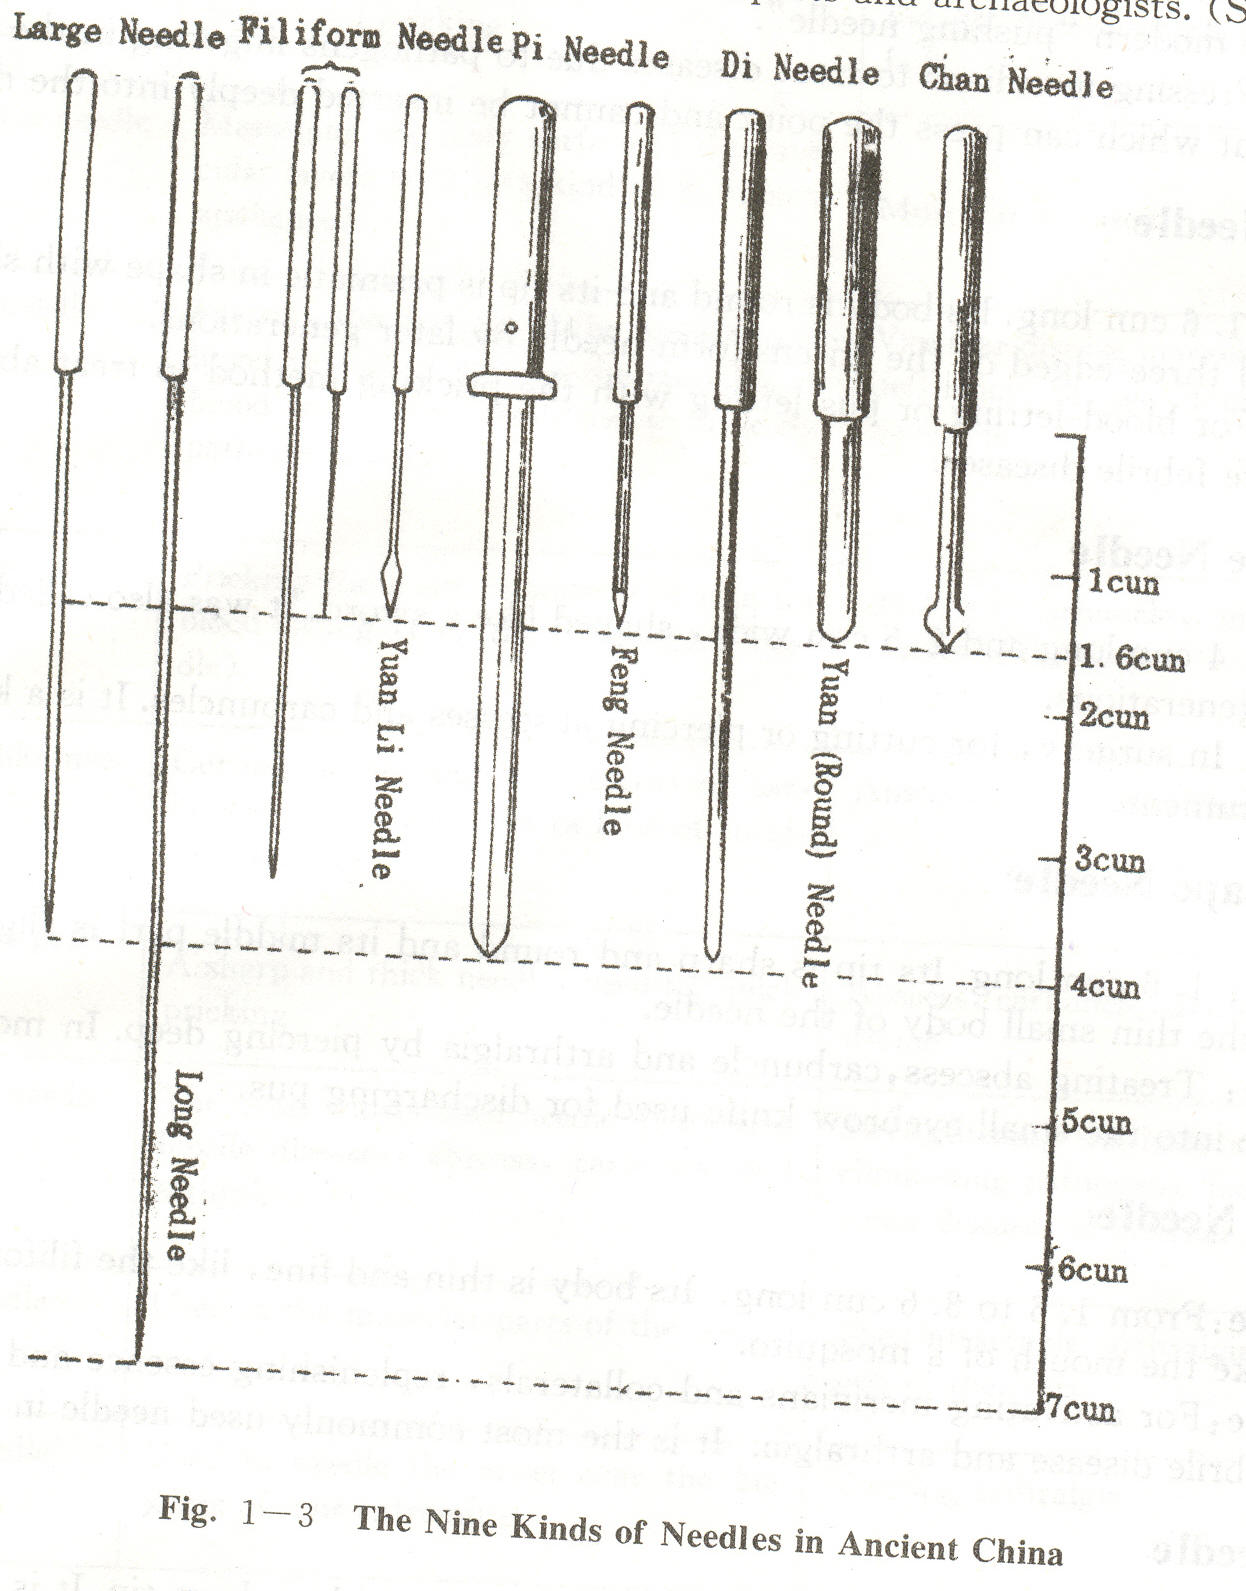 "The nine needles that were first describes in the Nei Jing, were tools that varied in length and diameter and used for different techniques. The Nei Jing states that these nine needles, ""have a relationship to yin and yang, and the four seasonal energies."" Each needle has specific form to correspond to different conditions. ""The first needle, called chan zhen, superficially punctures the skin. The second needle, called yuan zhen, does not penetrate but instead massages acupoints on the flesh and muscles. The third needle, ti zhen, punctures the vessels. The fourth needle, feng zhen, punctures and draws blood from capillaries and small veins. The fifth needle, fei pi zhen, lances the skin to drain pus. The sixth needle, yuan li zhen, punctures the joints for Bi conditions. The seventh needle, hao zhen, punctures the acupoints on the flesh. The eighth needle, chang zhen, punctures deep fleshy locations. The ninth needle, da zhen, punctures the abdomen to relevive edema or masses. Choose these needles wisely for the appropriate occasion."" (Ni 1995)"